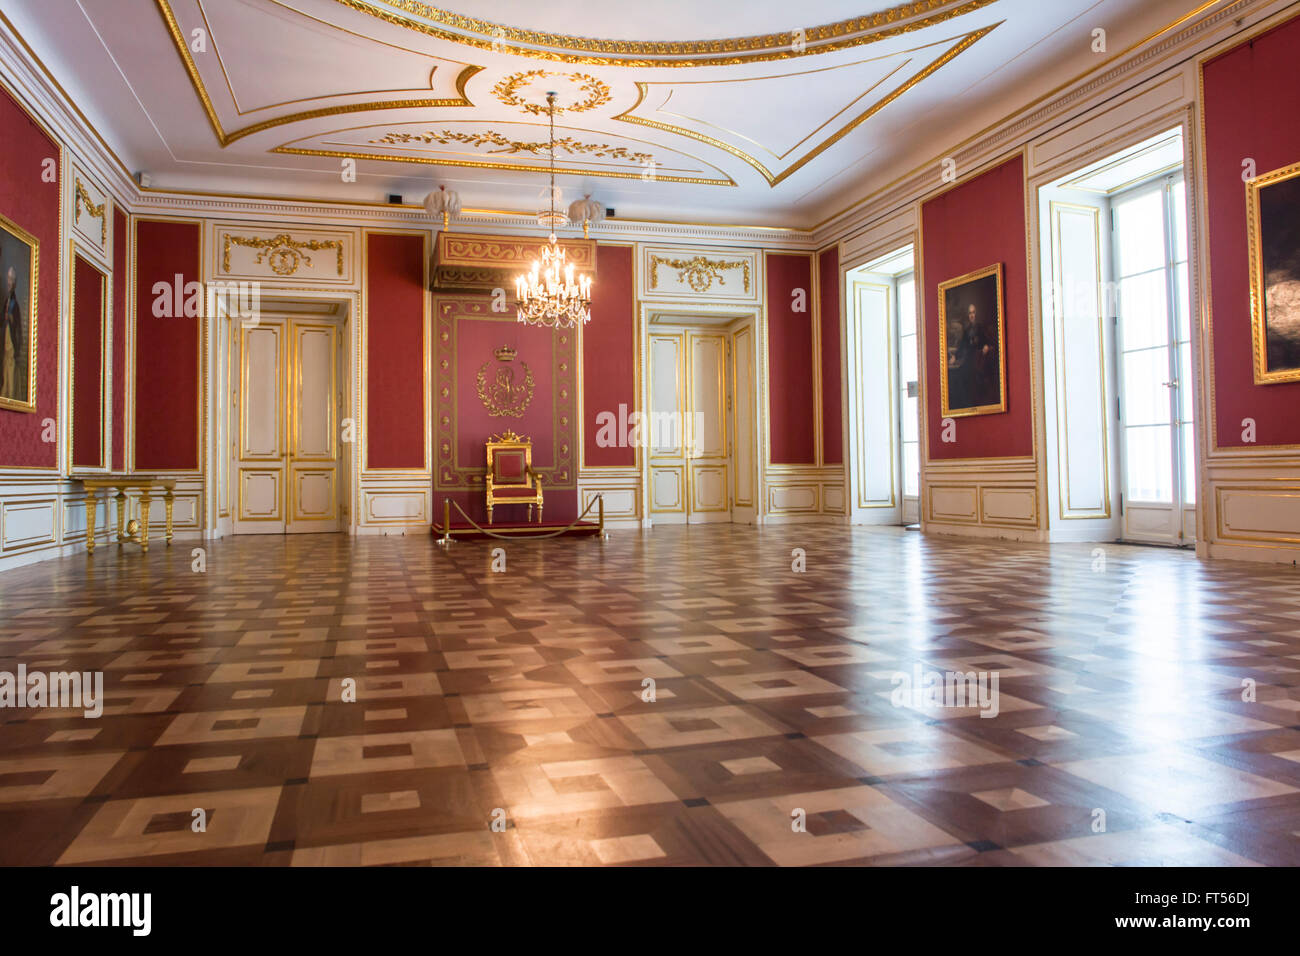 Indoors of The Royal Castle in Warsaw, Poland Stock Photo